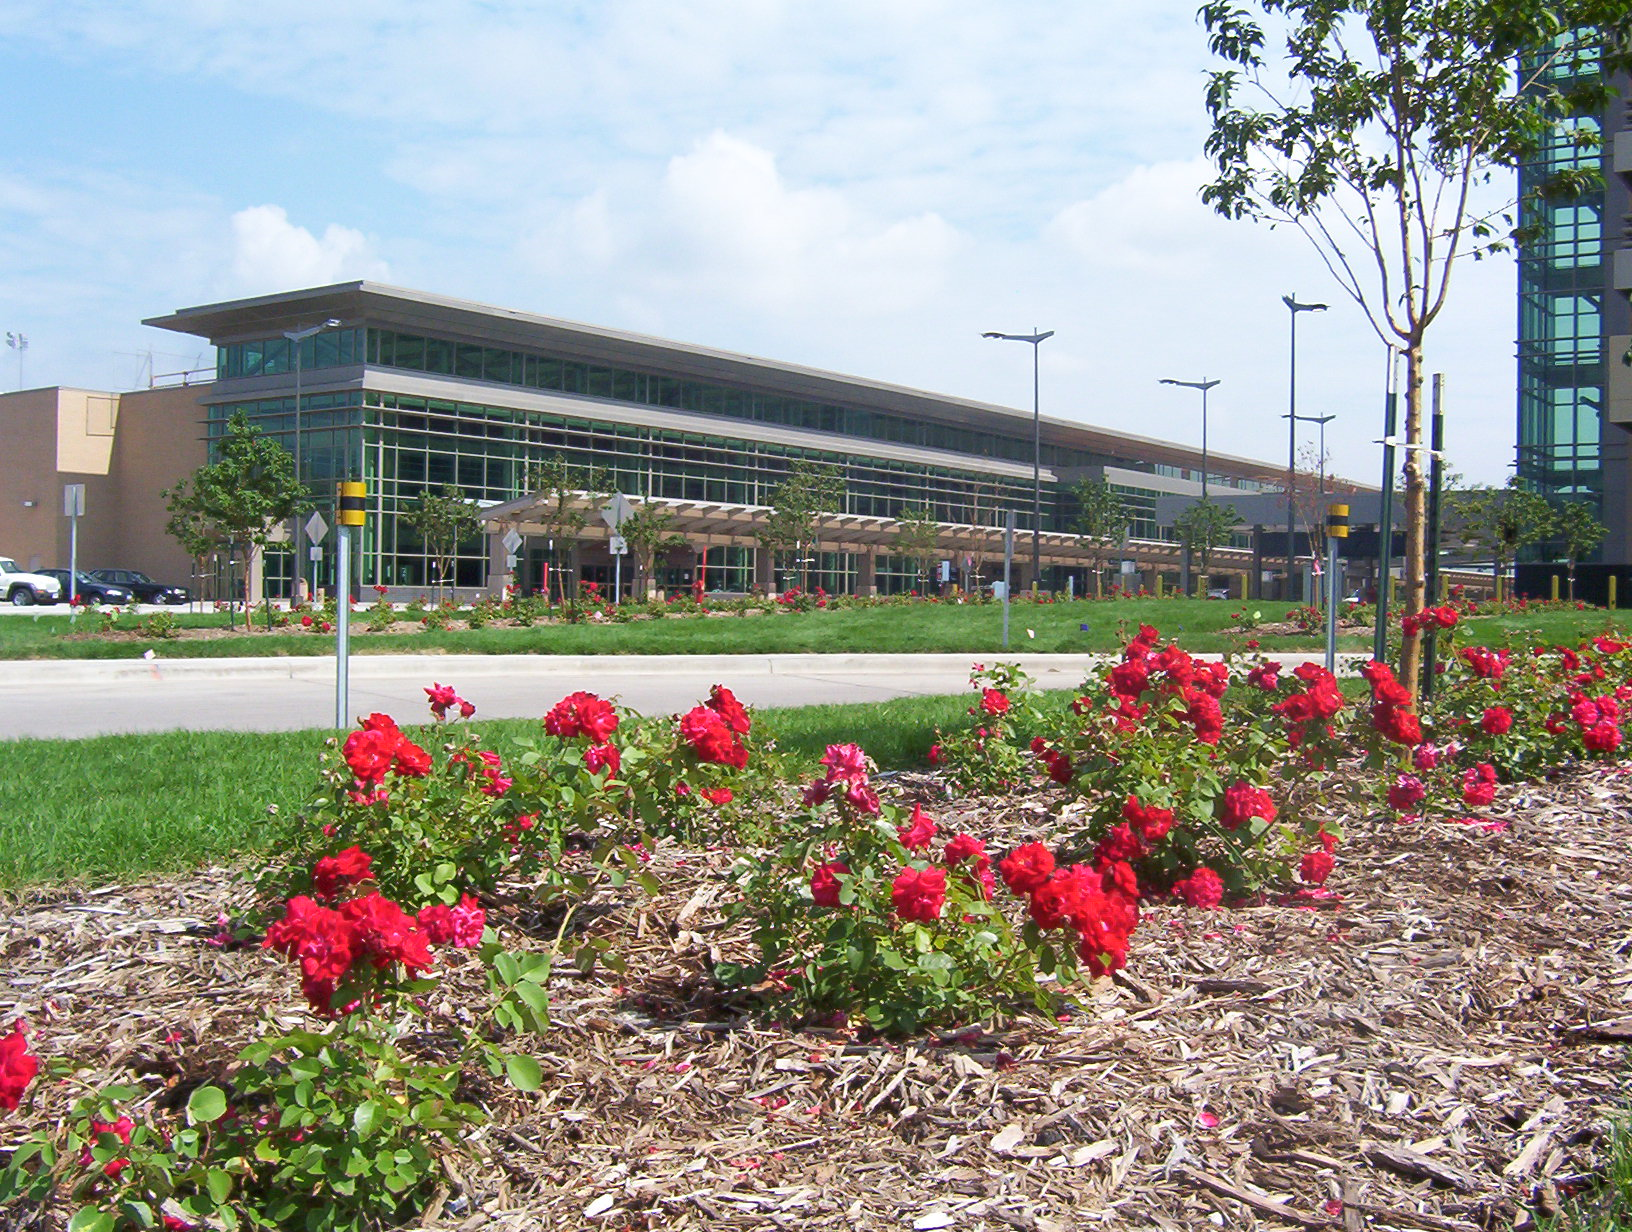 Commercial campus landscape maintenance irrigation by design